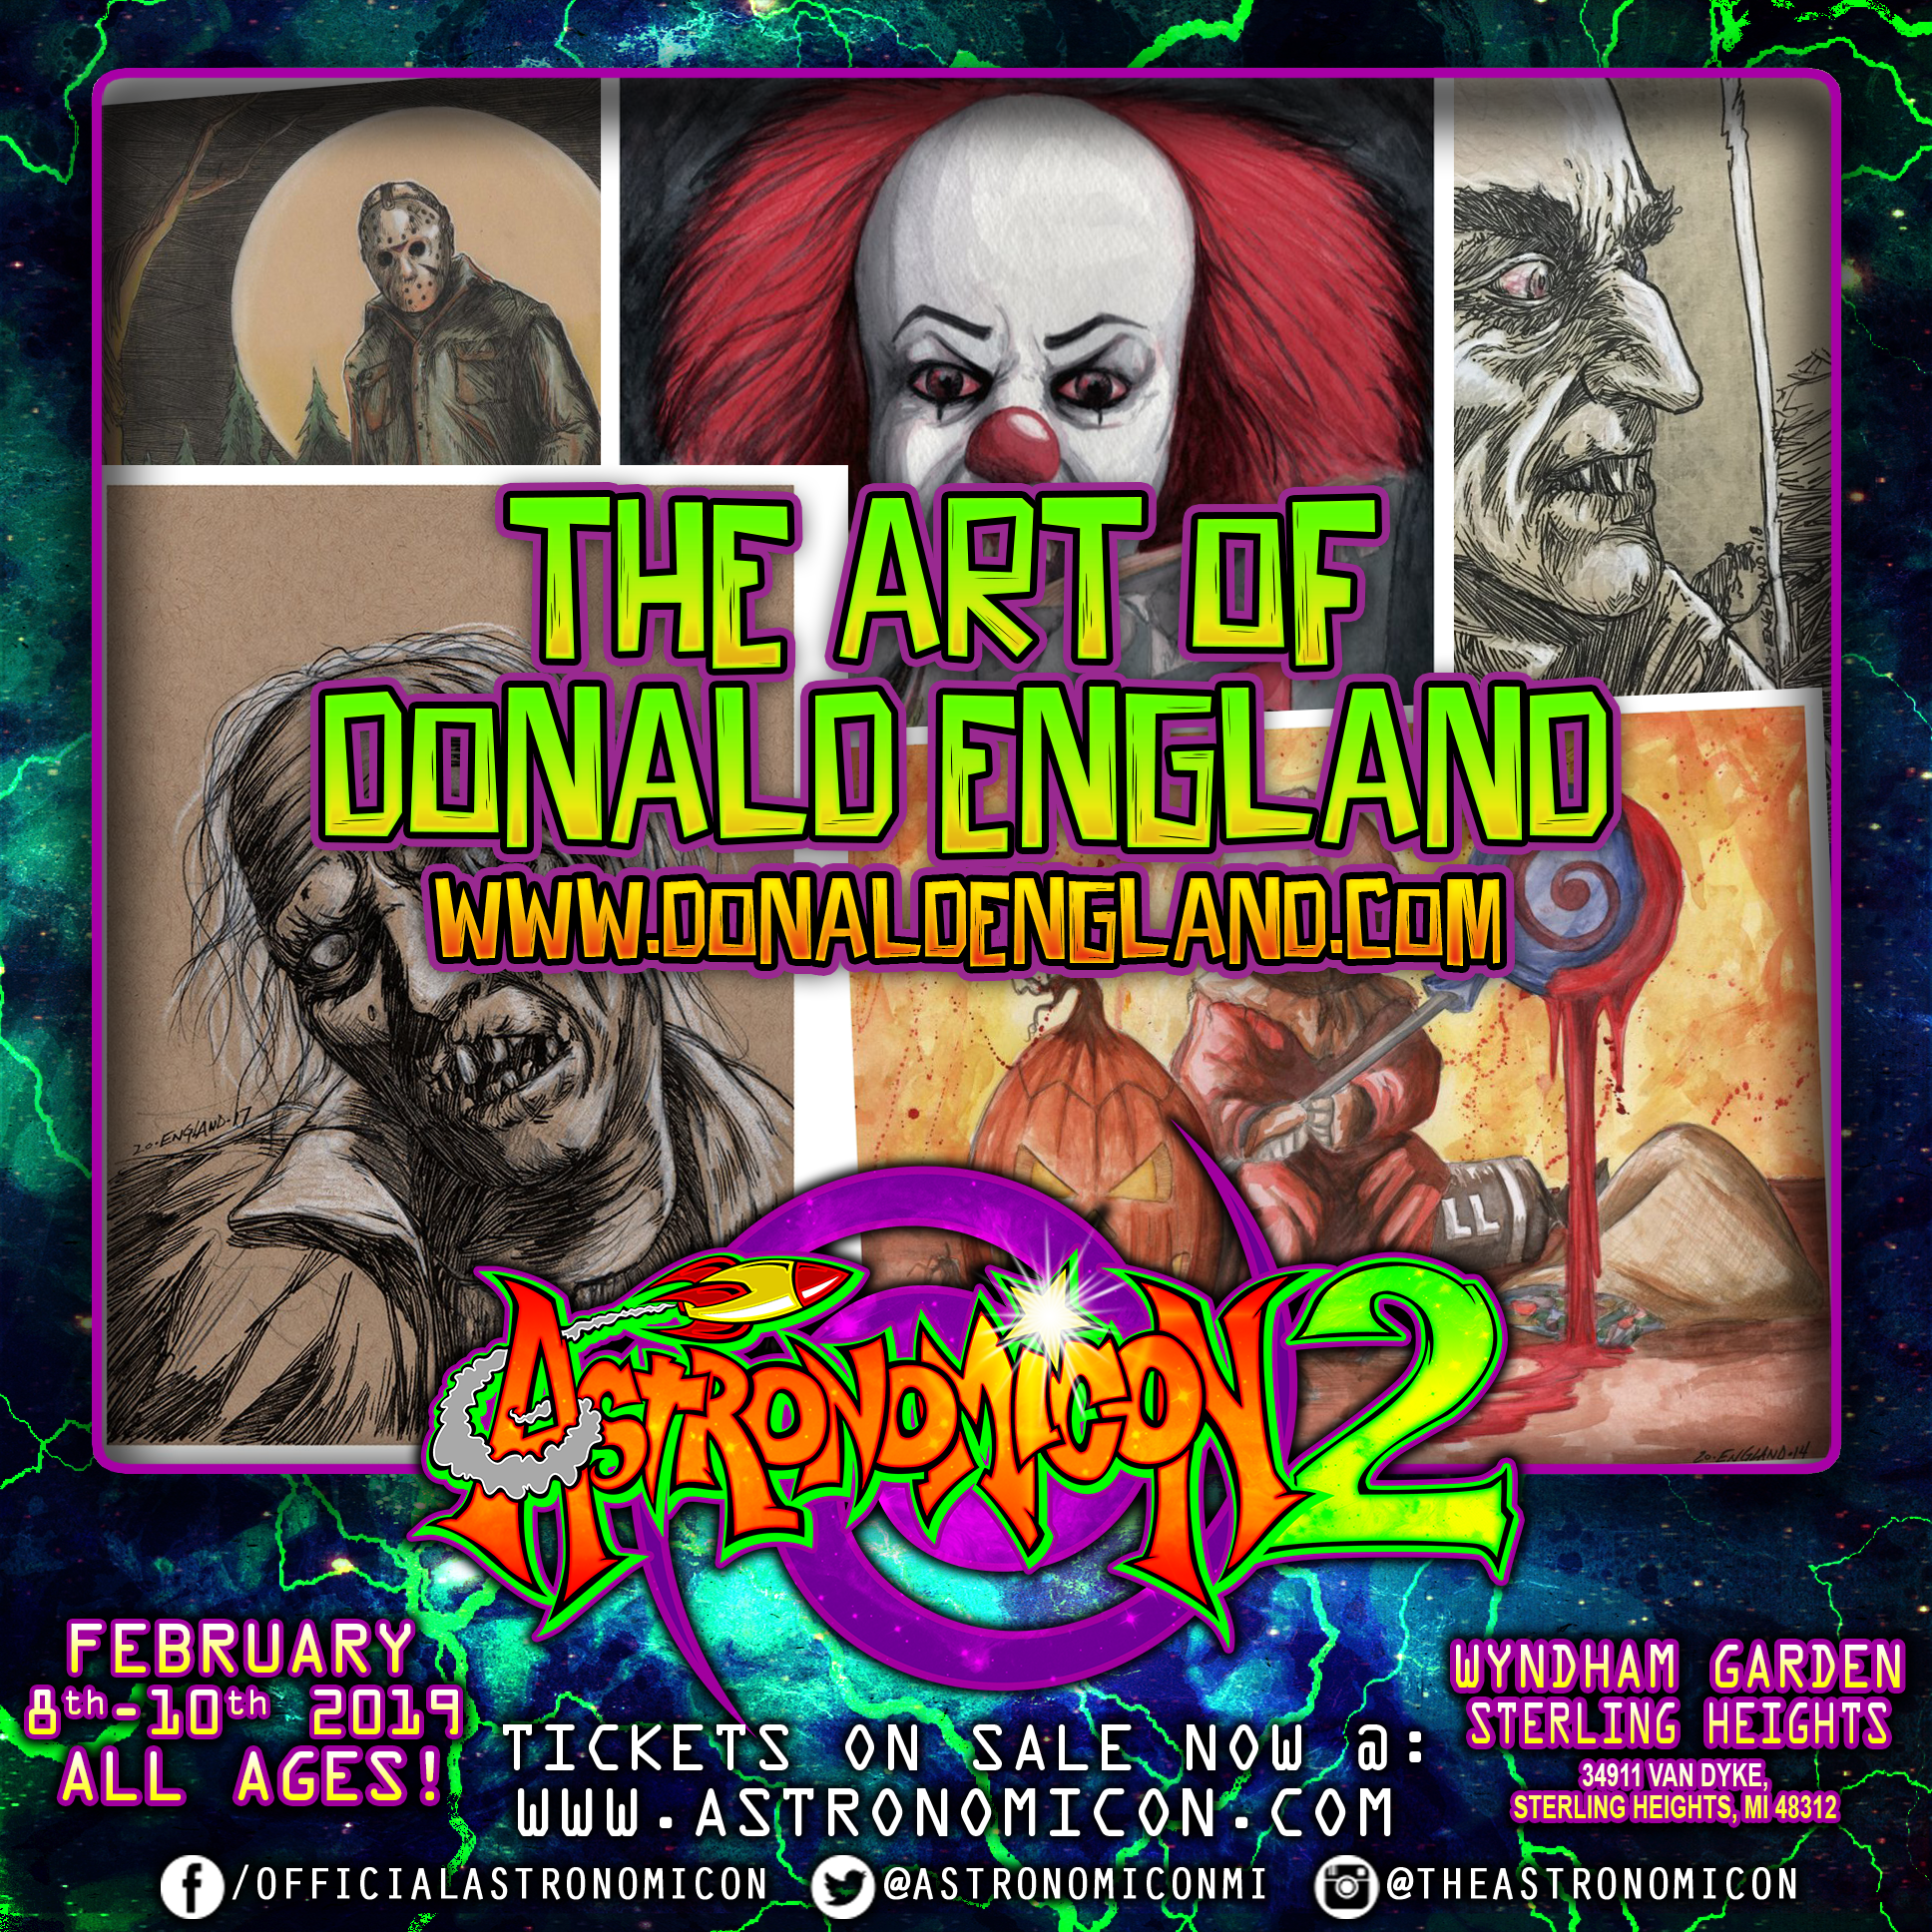 Astronomicon 2 Donald England  Art IG Ad.png